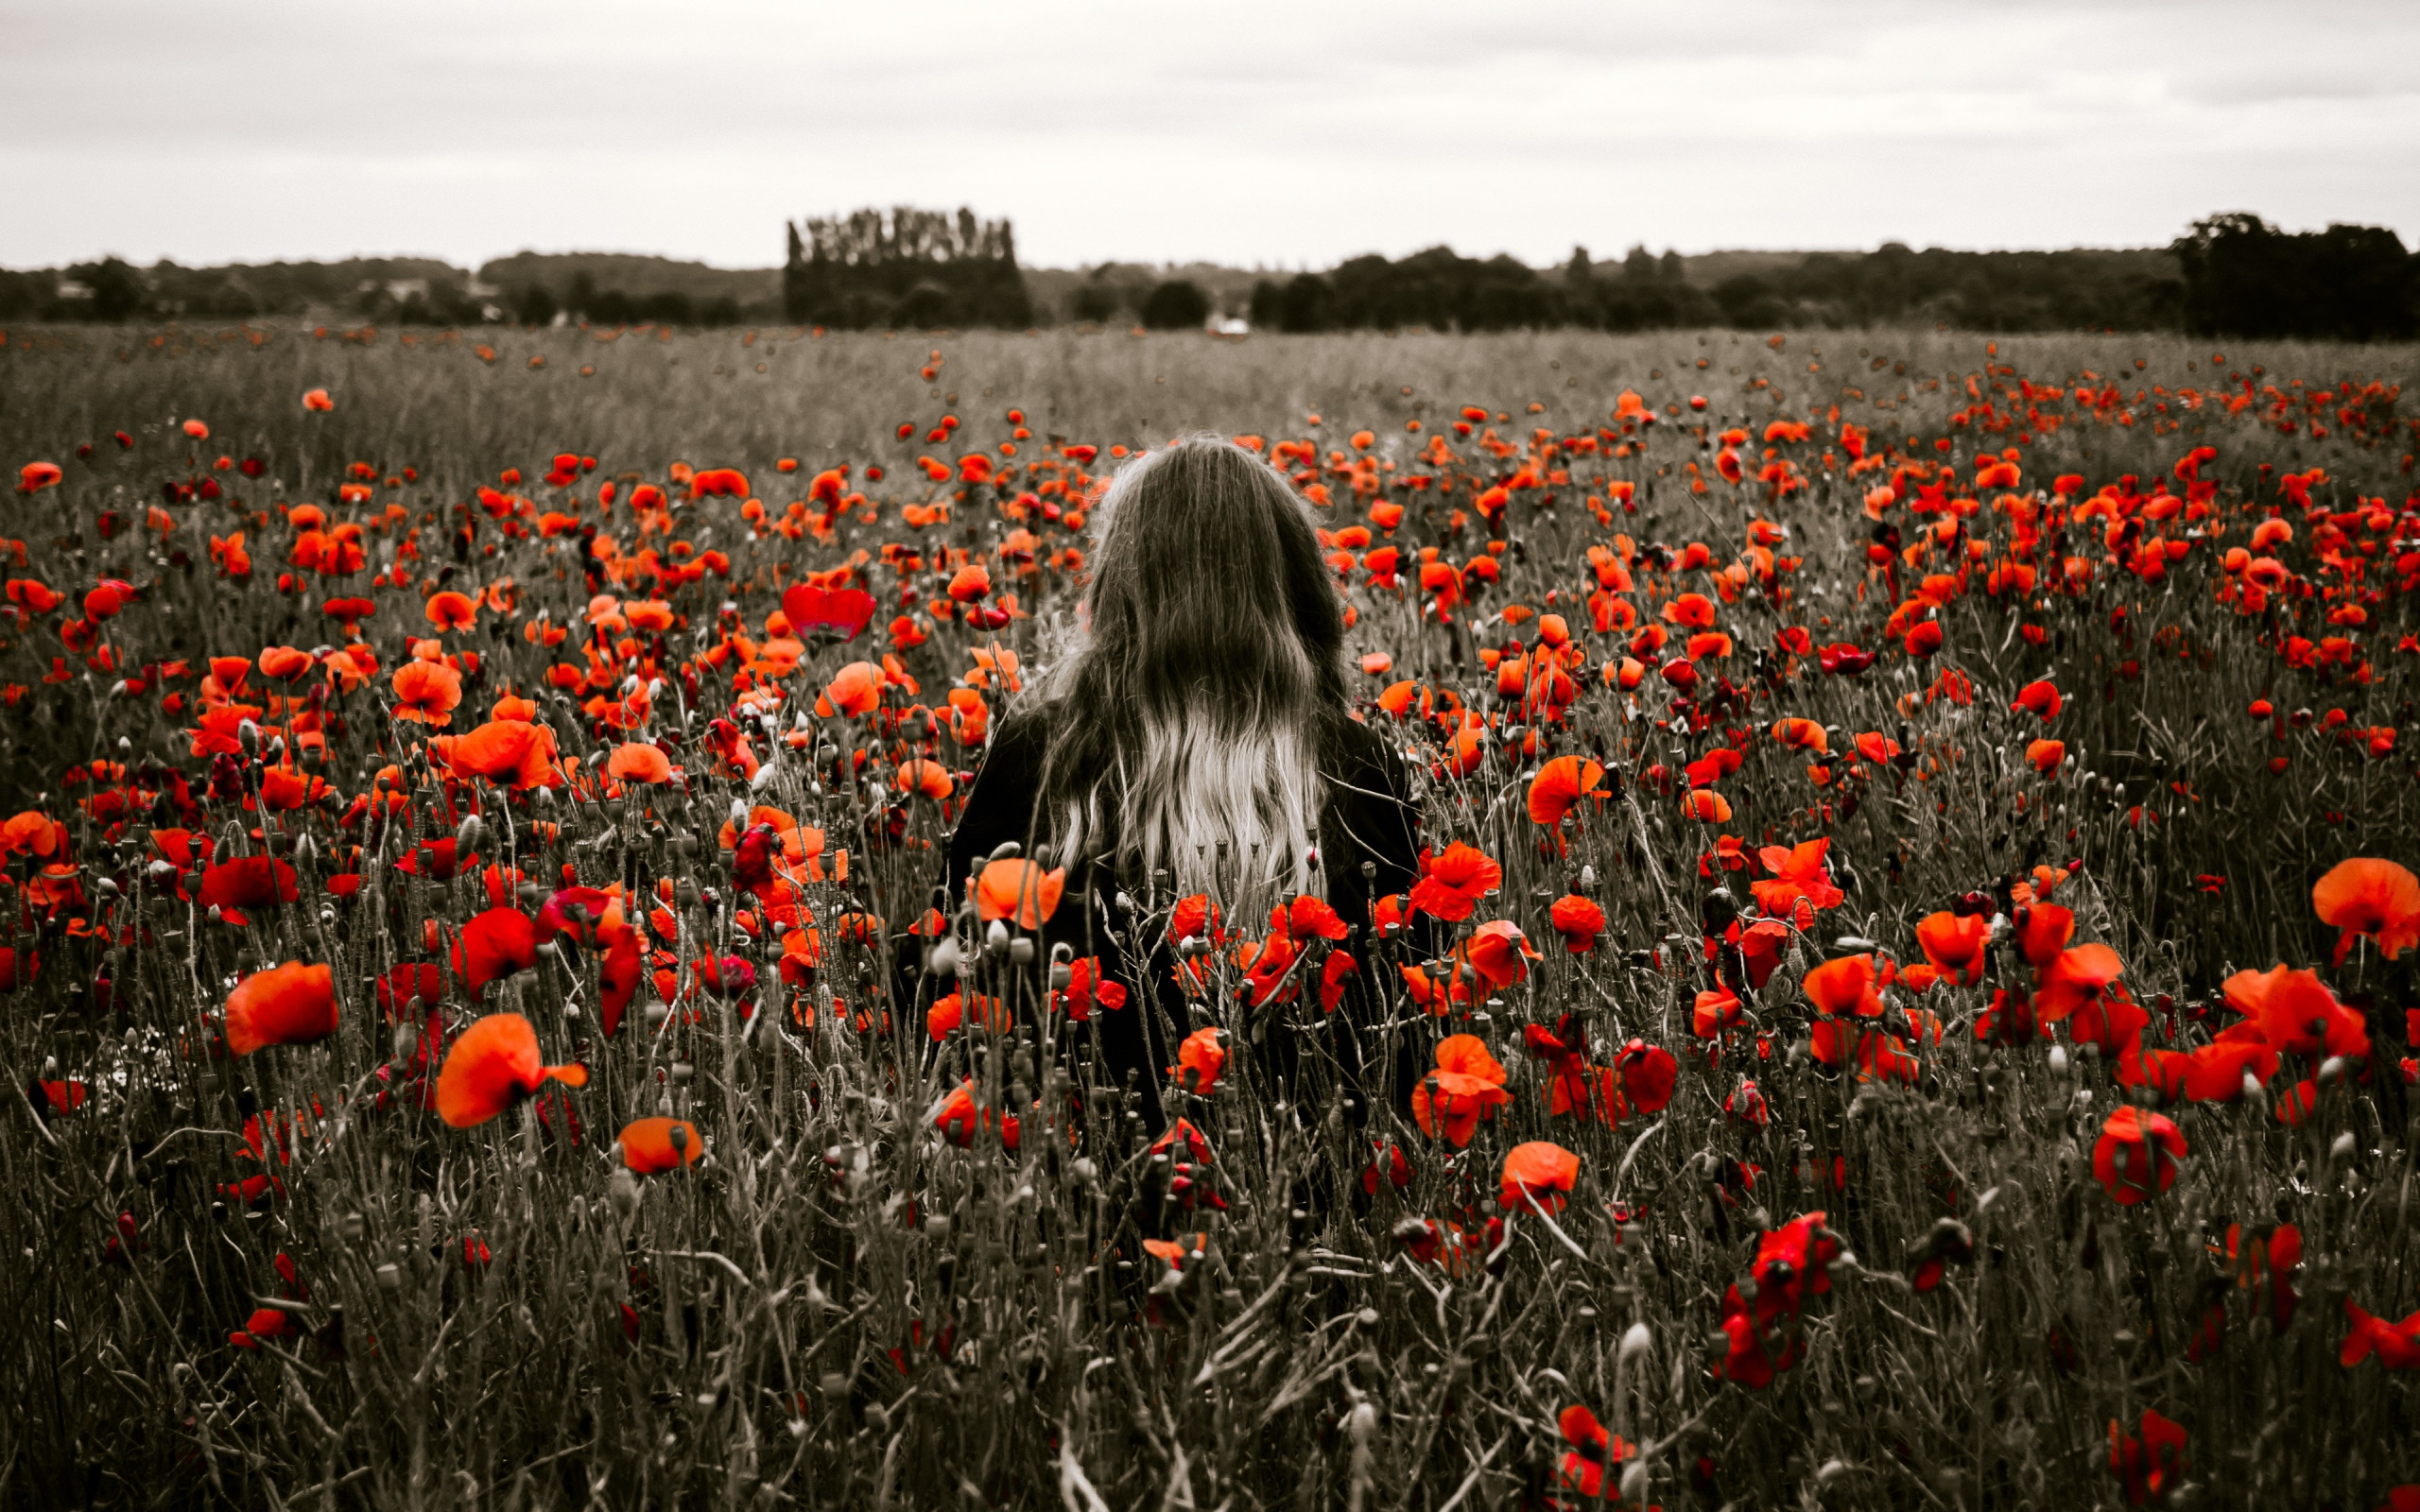 Girl in the field with red poppies wallpaper 2560x1600